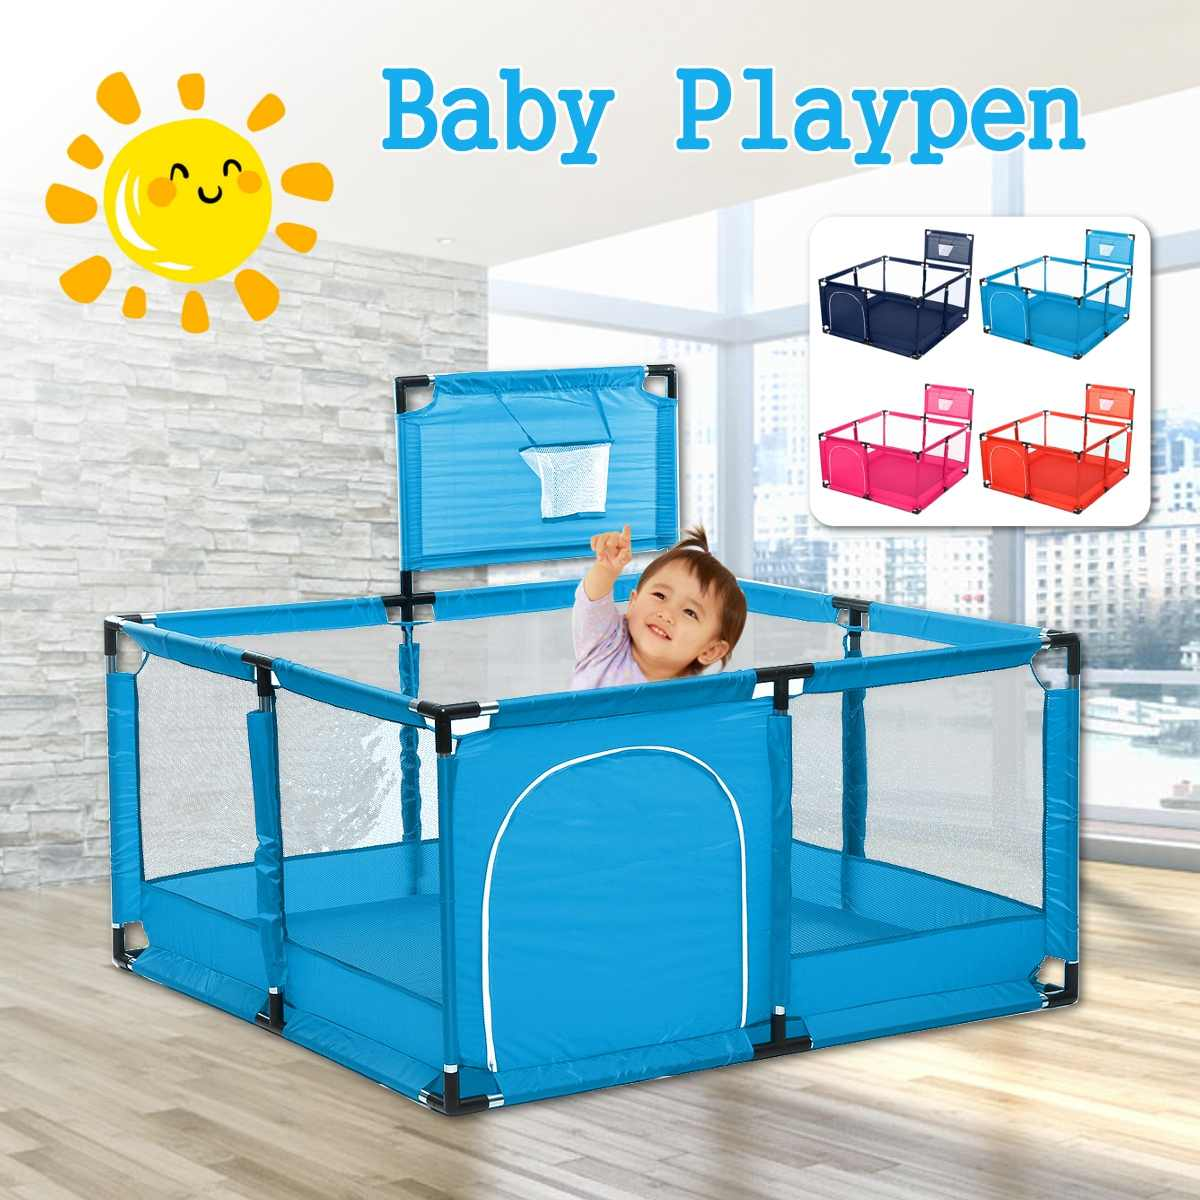 Bioby Baby Playpen Children Toddler Kids Safety Fence Indoor Outdoor Play Pen Ocean Ball Pool Safety Barrier With Basket